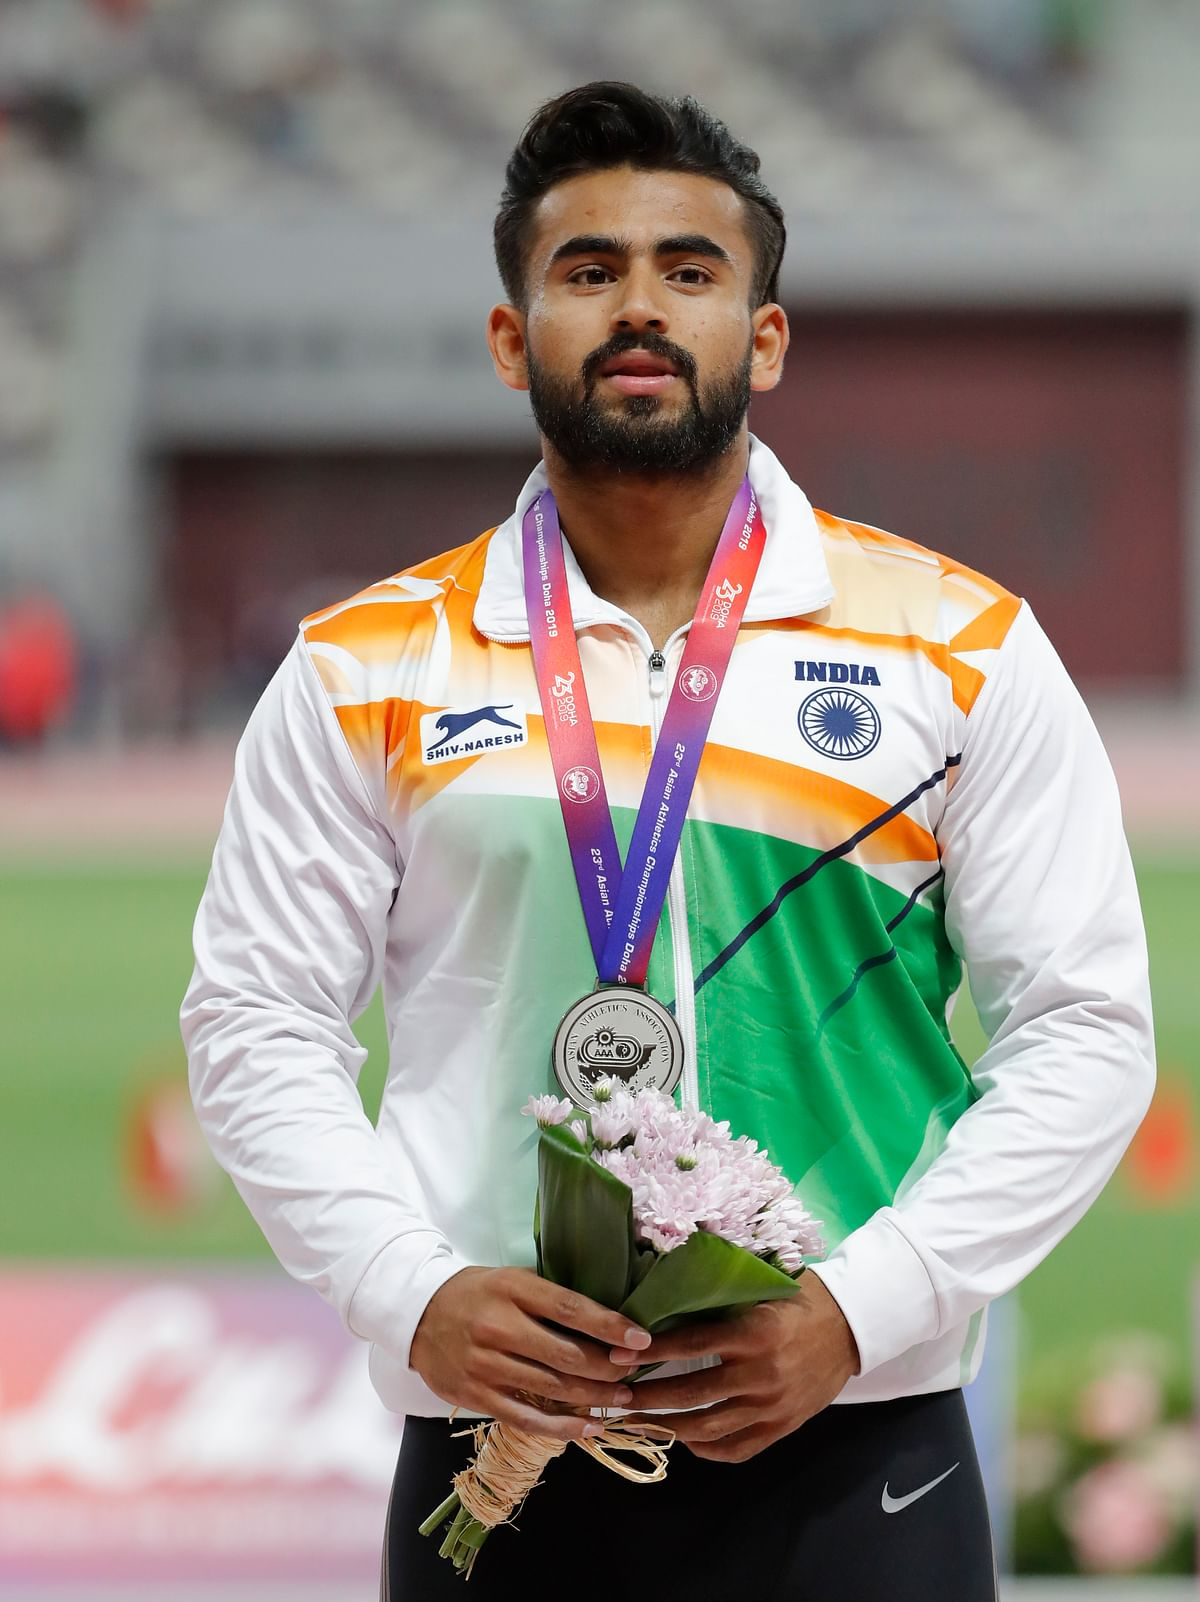 Shivpal Singh celebrates after winning the silver medal for the men's javelin throw.